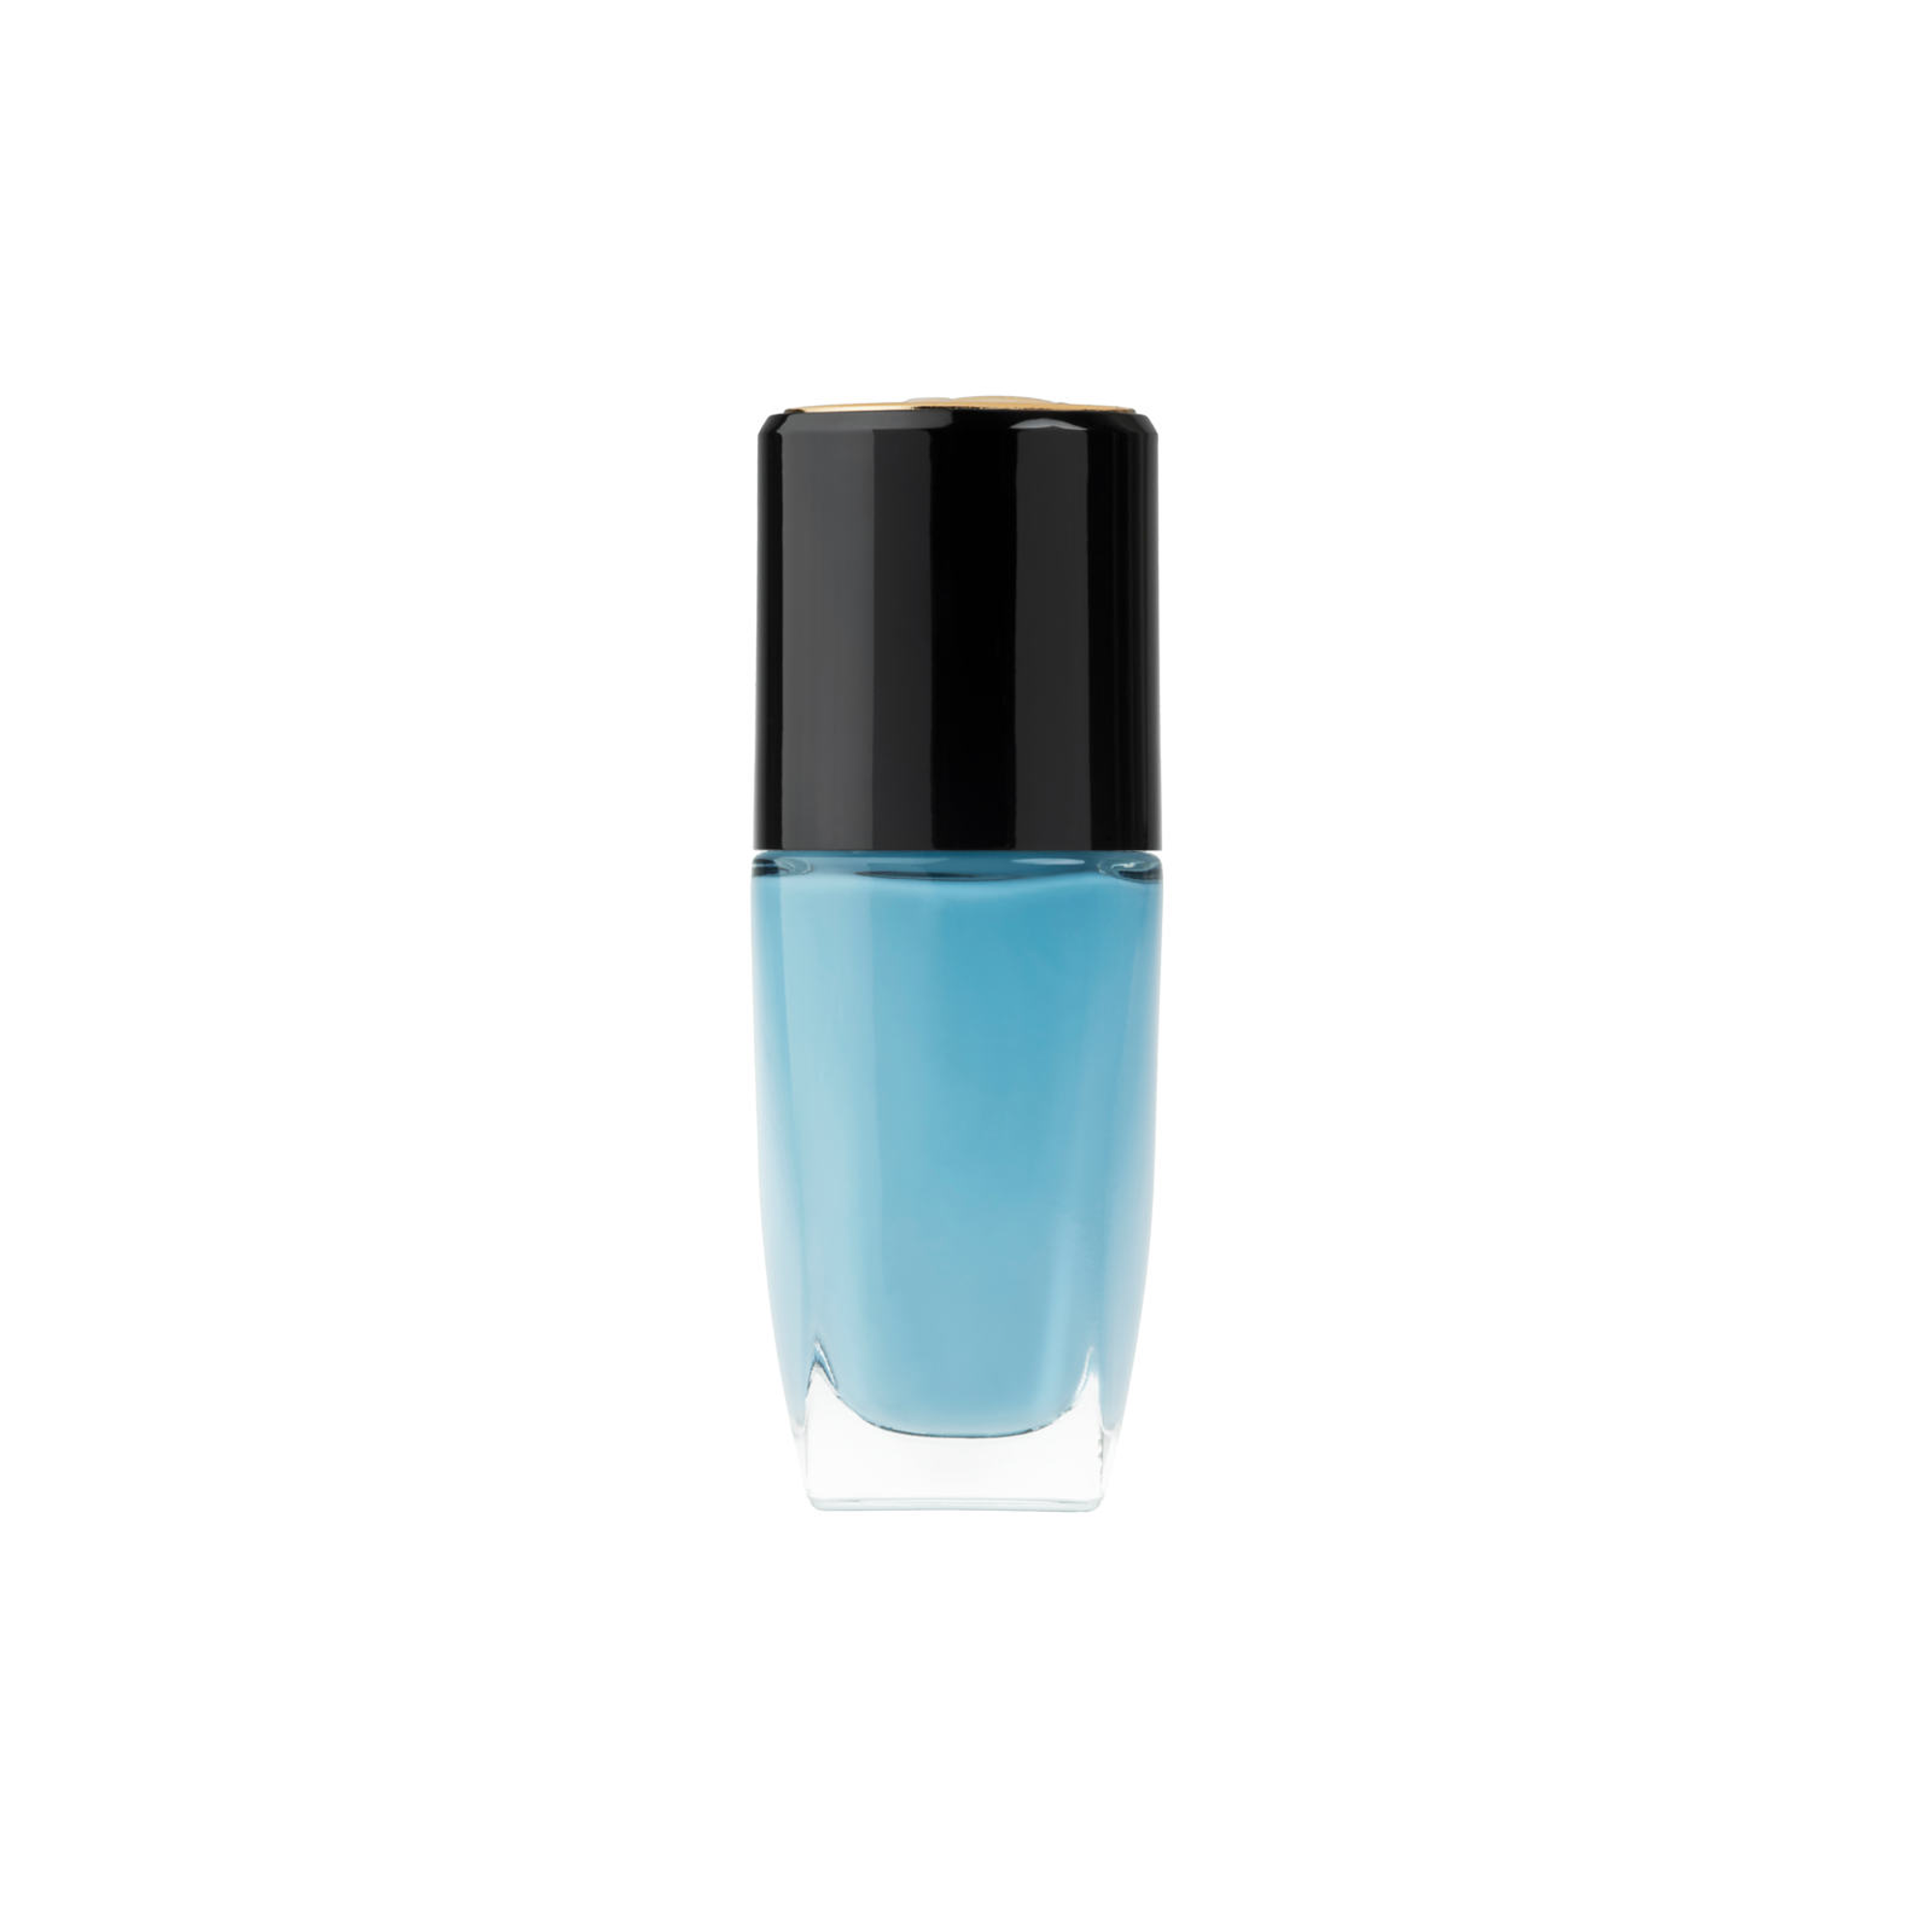 Le Vernis Nail Lacquer 440 Candy Blue